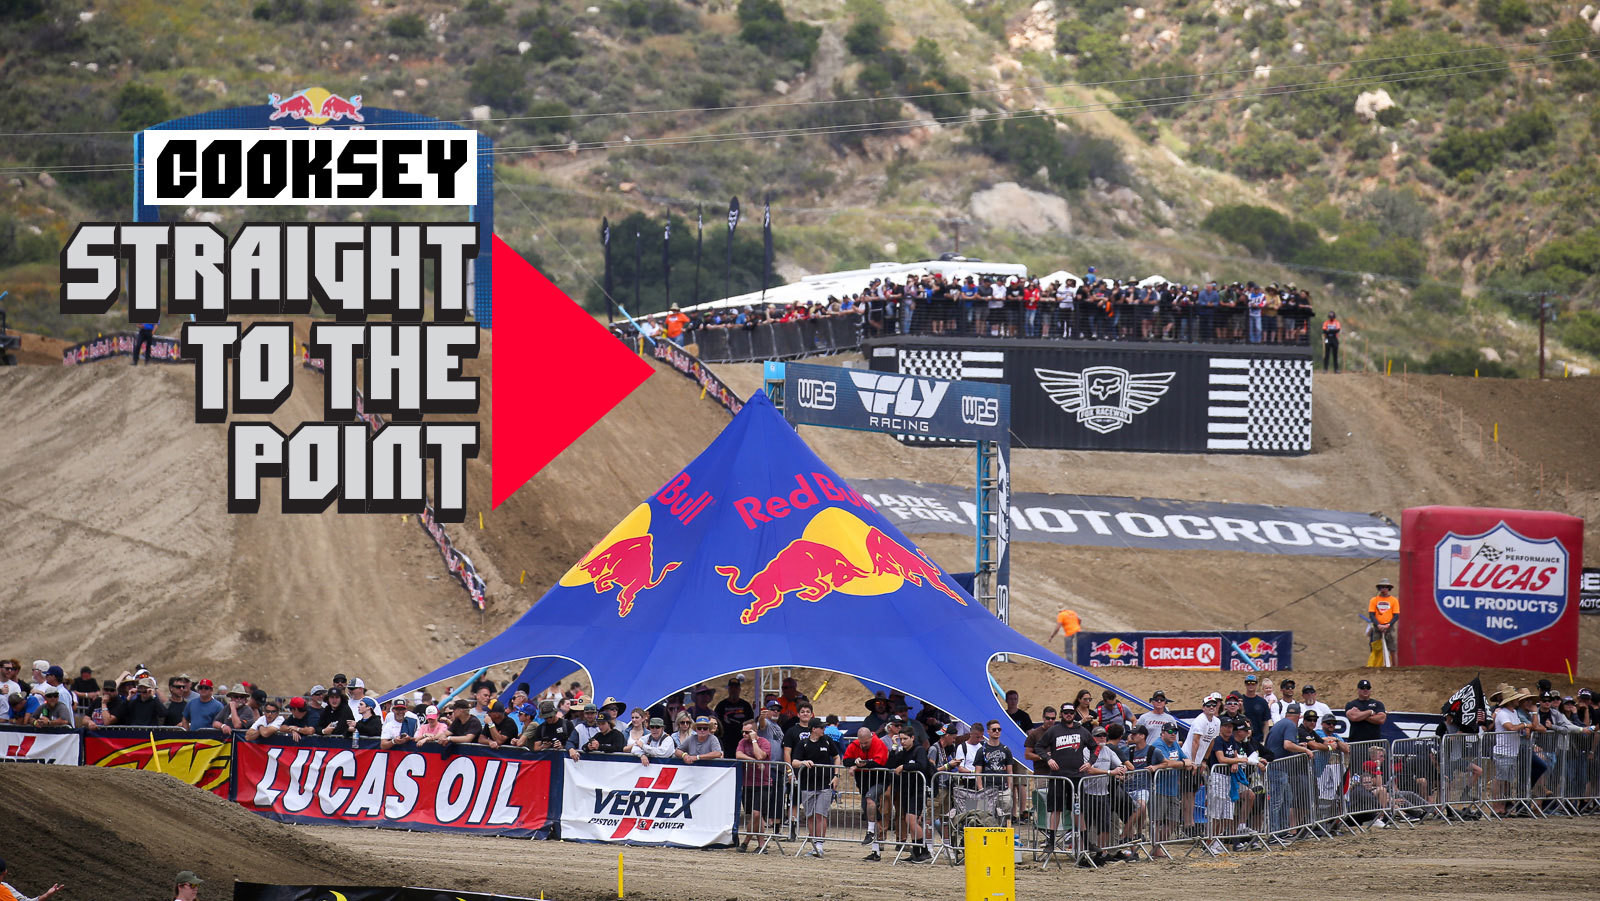 Cooksey Straight To The Point: Tripping Over Money, Glen Helen vs. MX Sports